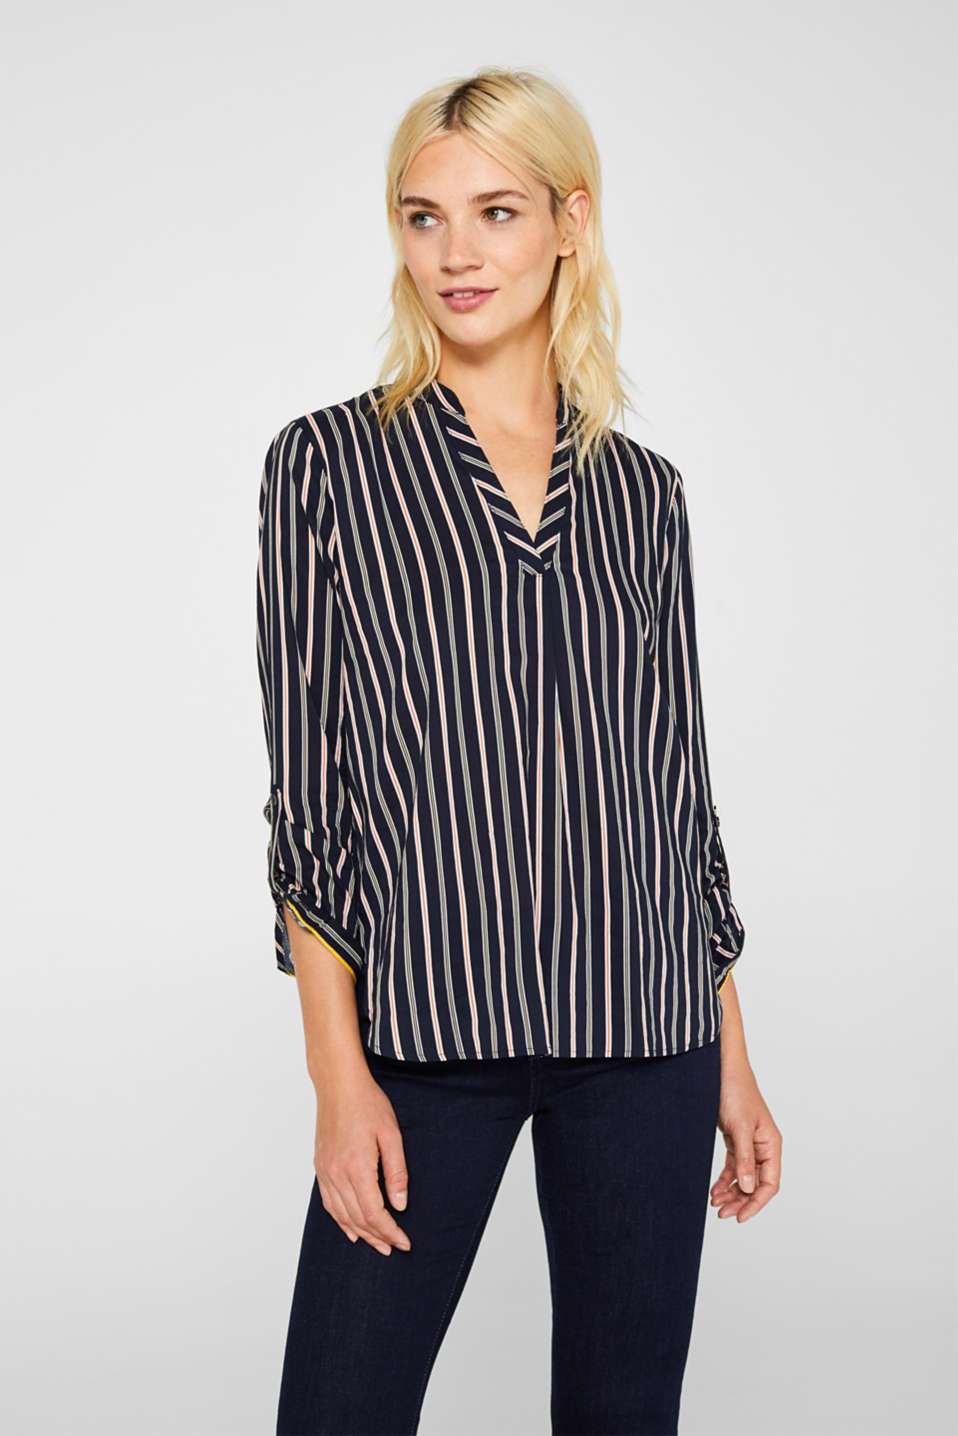 Esprit - Slip-on blouse with stripes